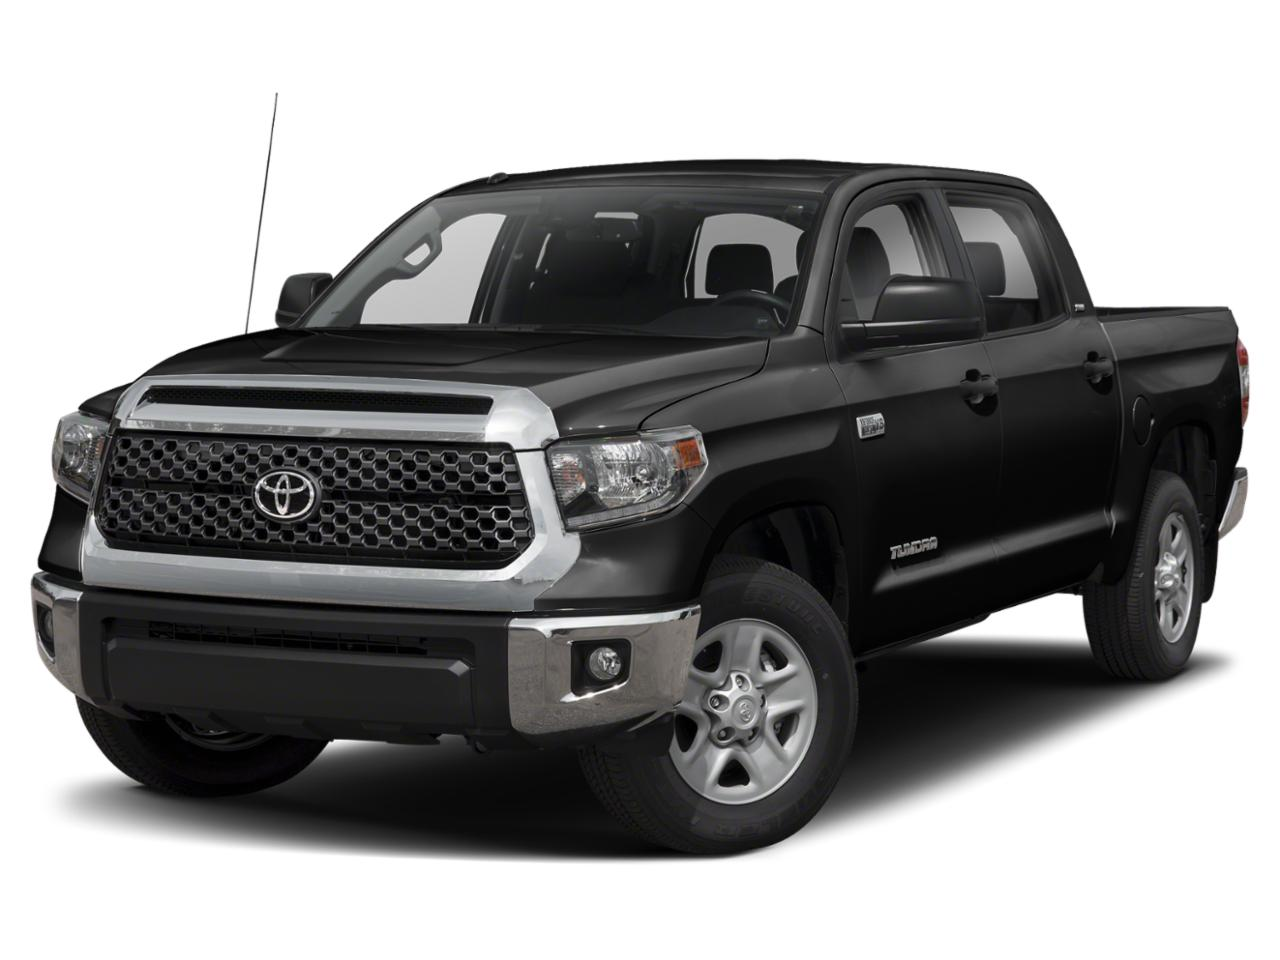 2018 Toyota Tundra 2WD Vehicle Photo in Lewisville, TX 75067